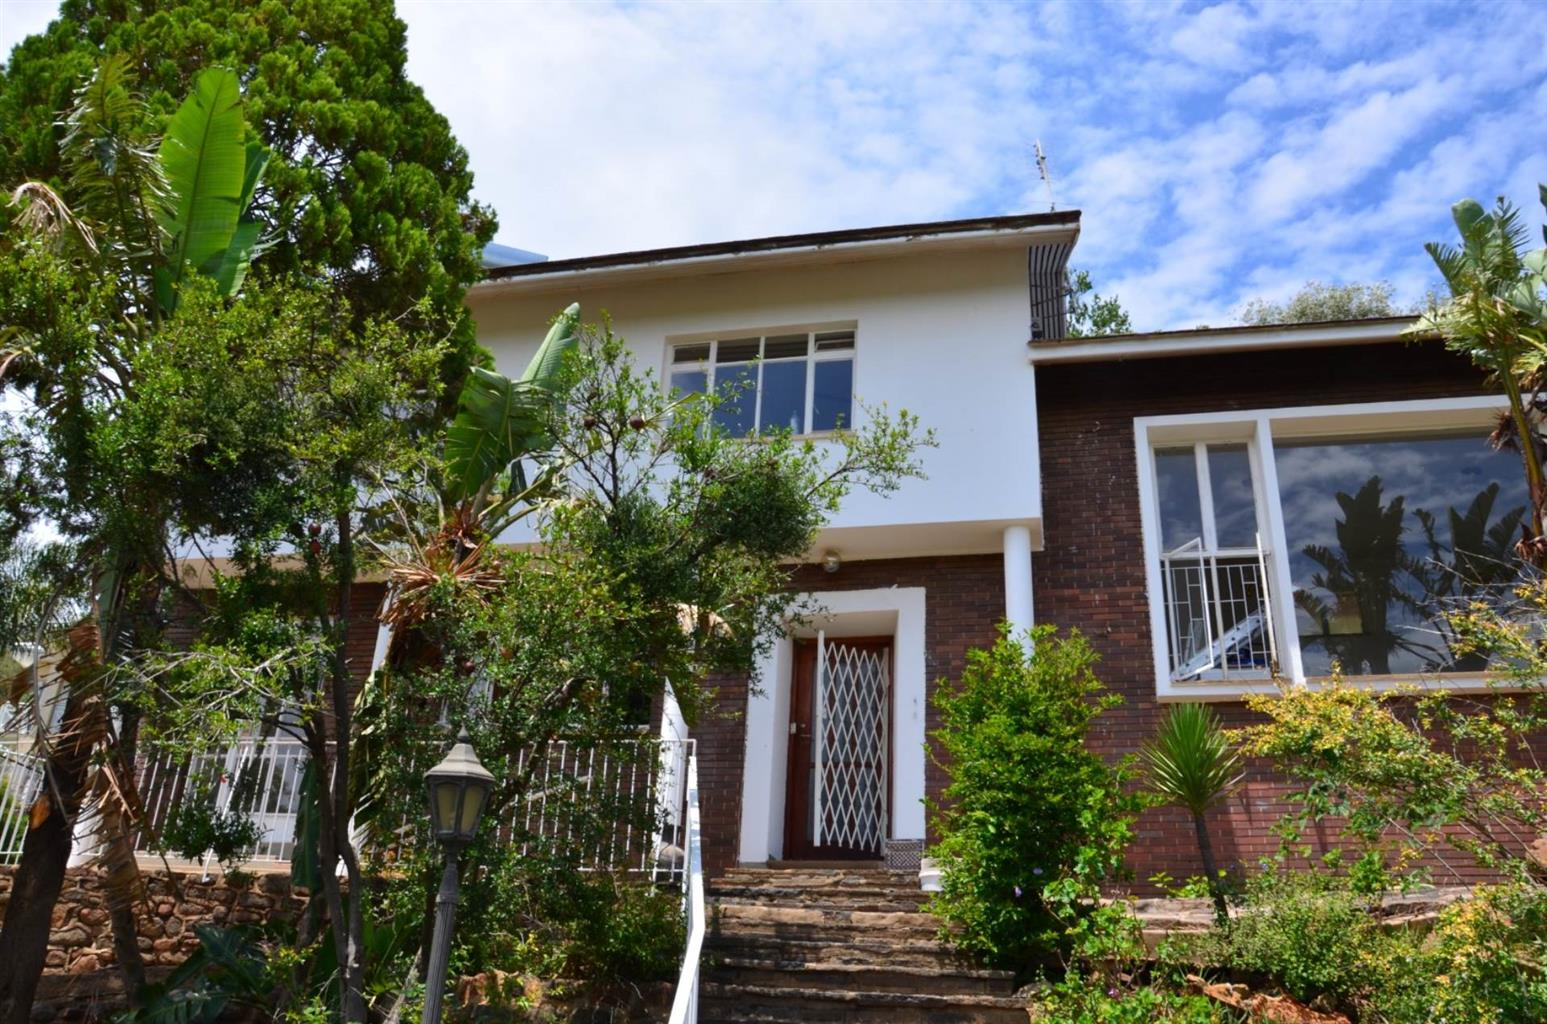 House For Sale in WAVERLEY